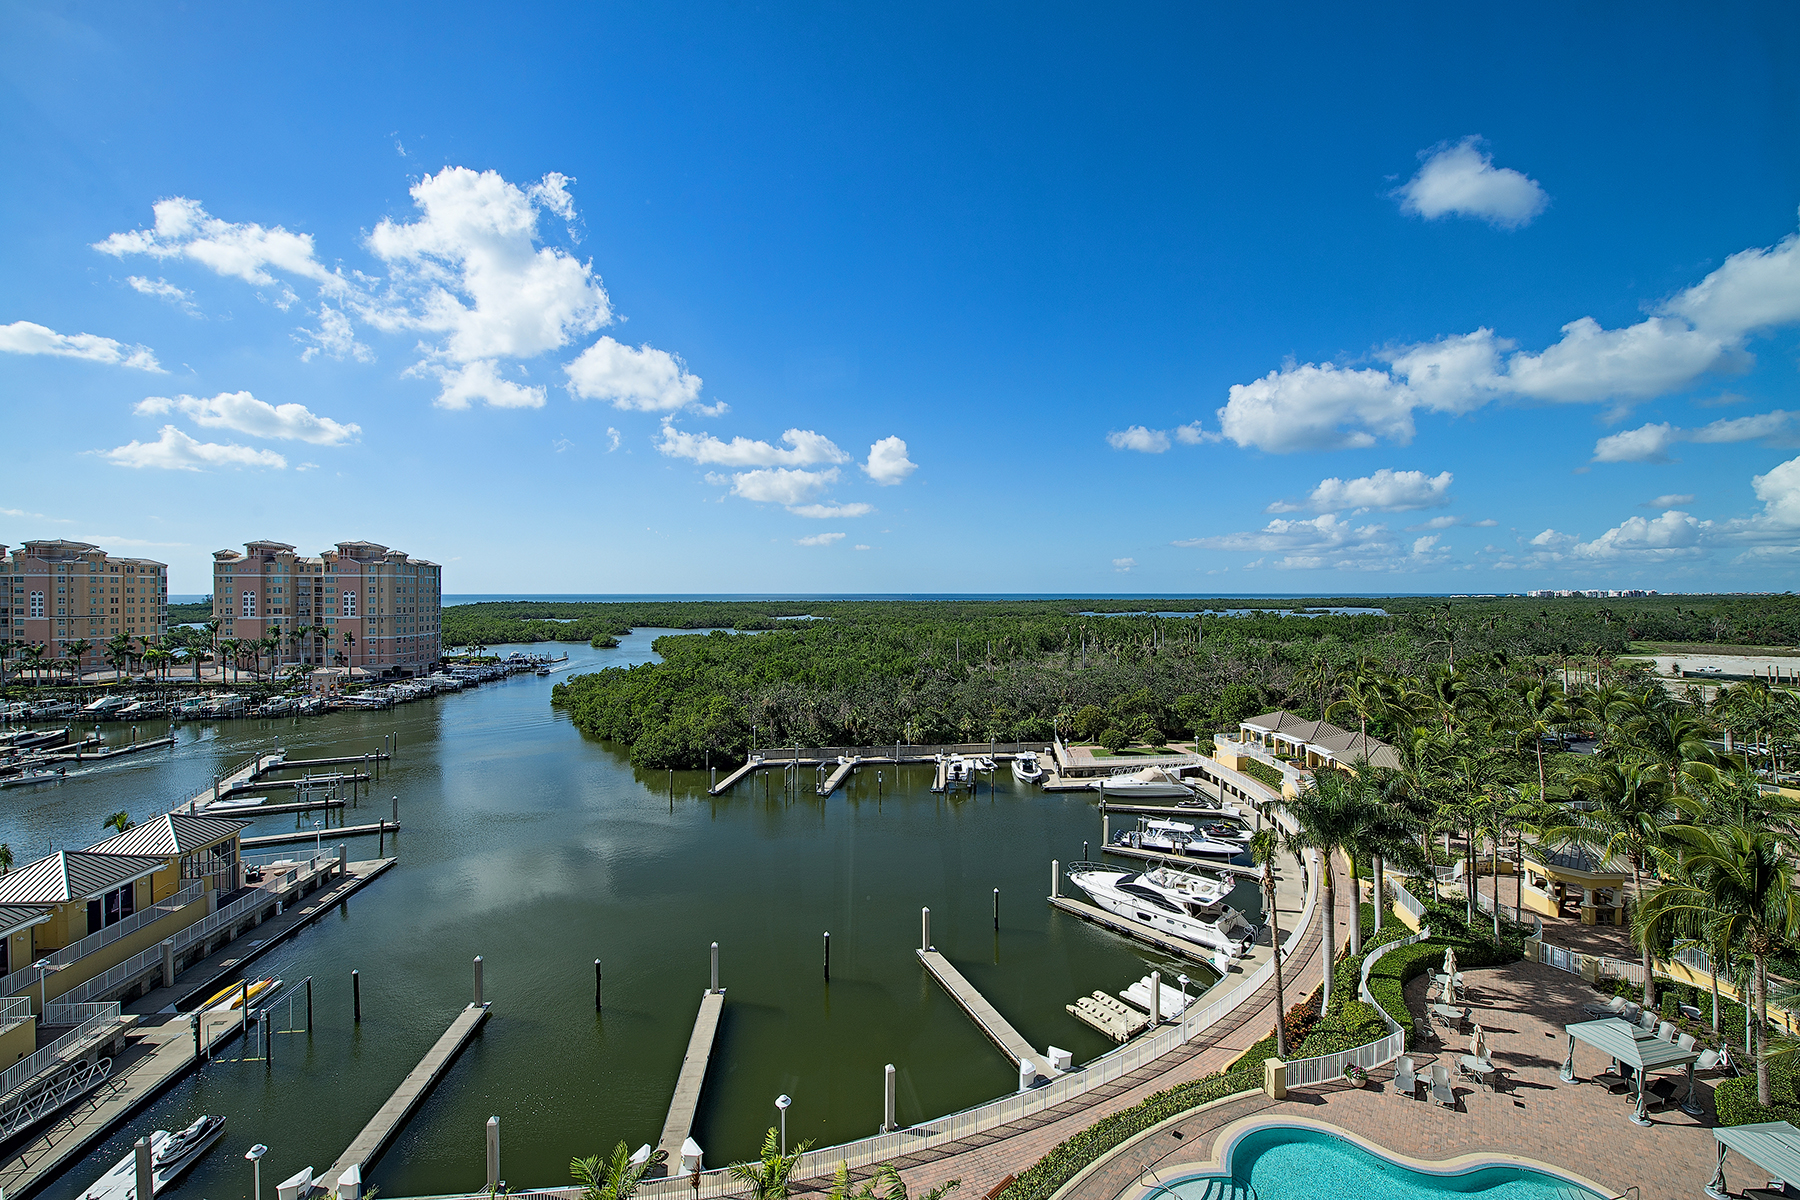 Condominium for Sale at Naples 13665 Vanderbilt Dr 804, Naples, Florida 34110 United States